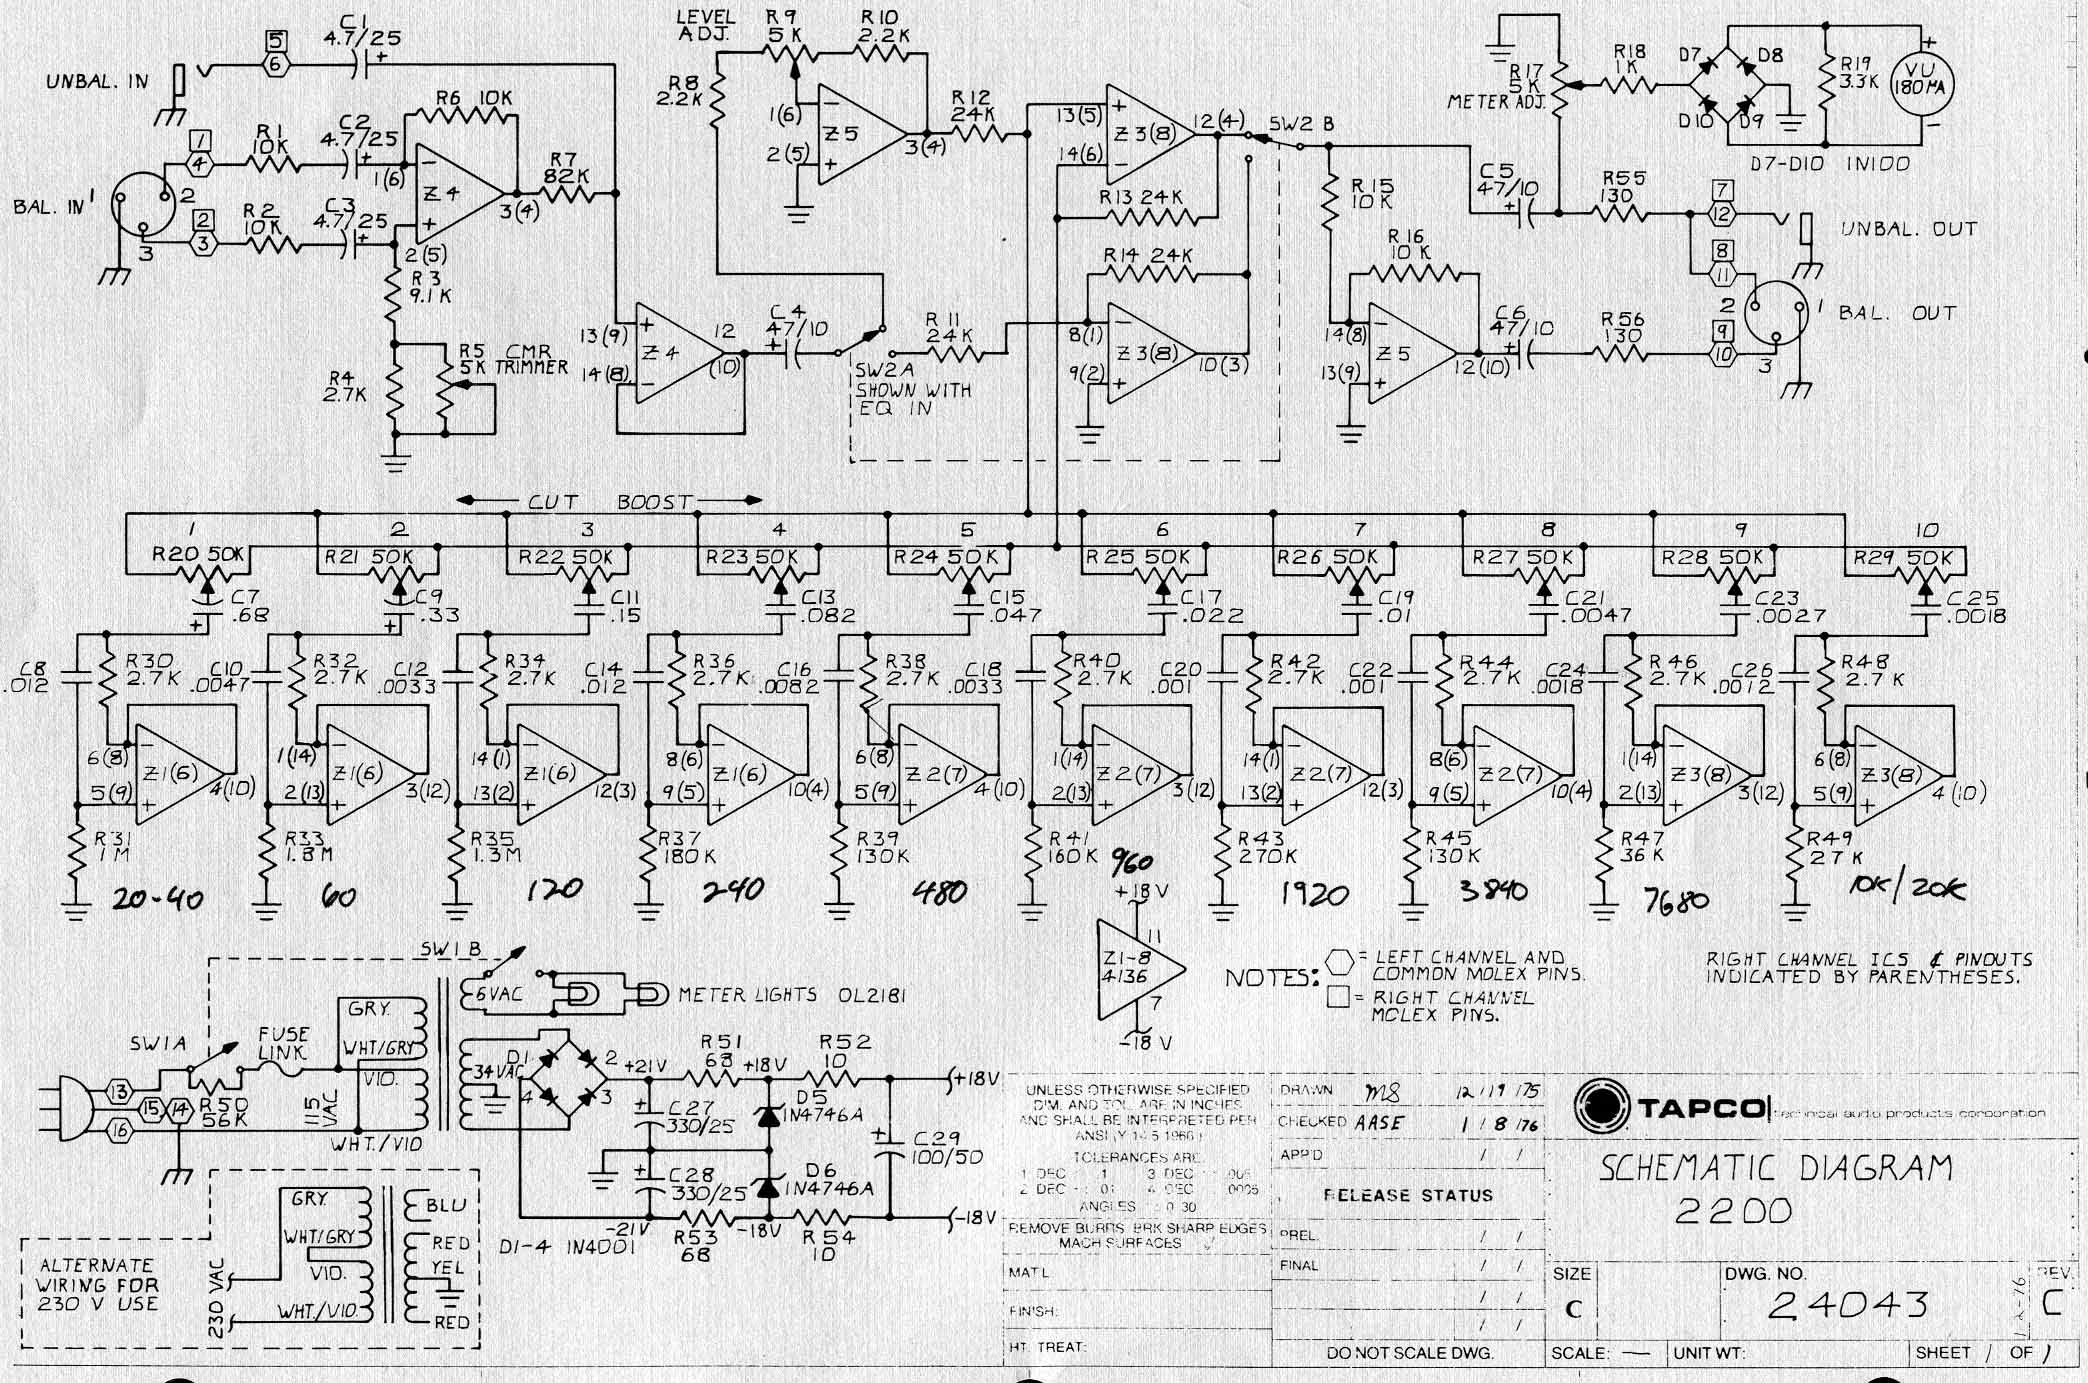 Schematics For Graphic Equalizer Auto Electrical Wiring Diagram Headphone Amp Schematic Circuit Using Njm2768b Audio Amplifier Related With 1996 Club Car